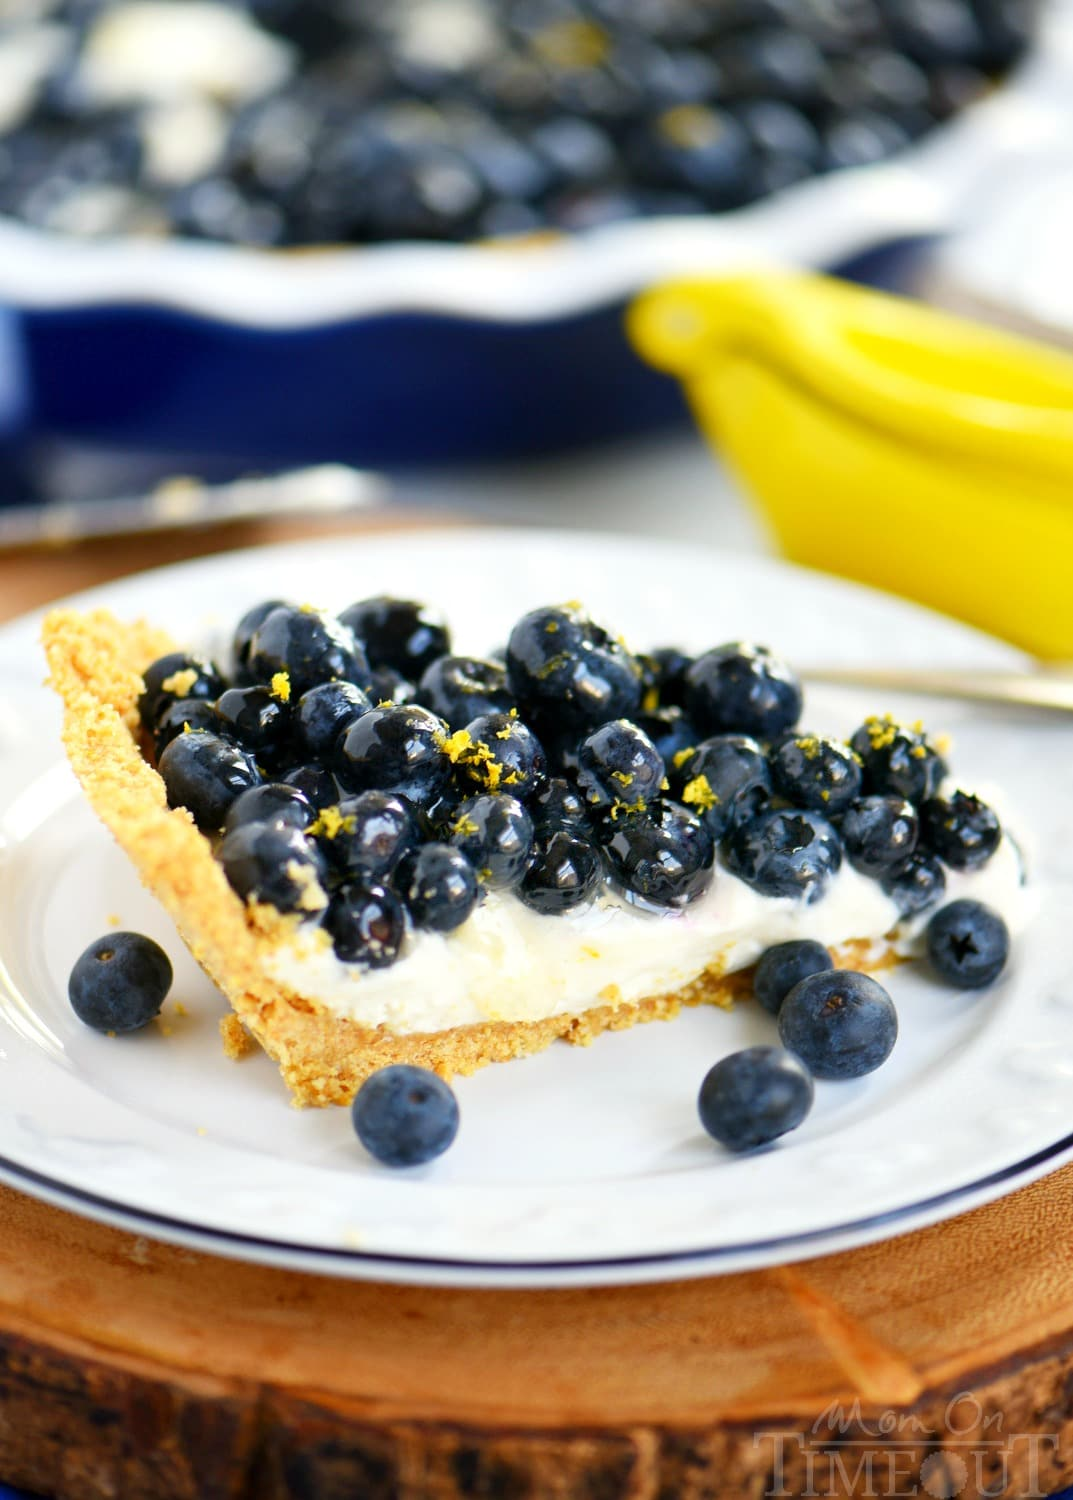 cream-pie-lemon-fresh-blueberries-side-profile